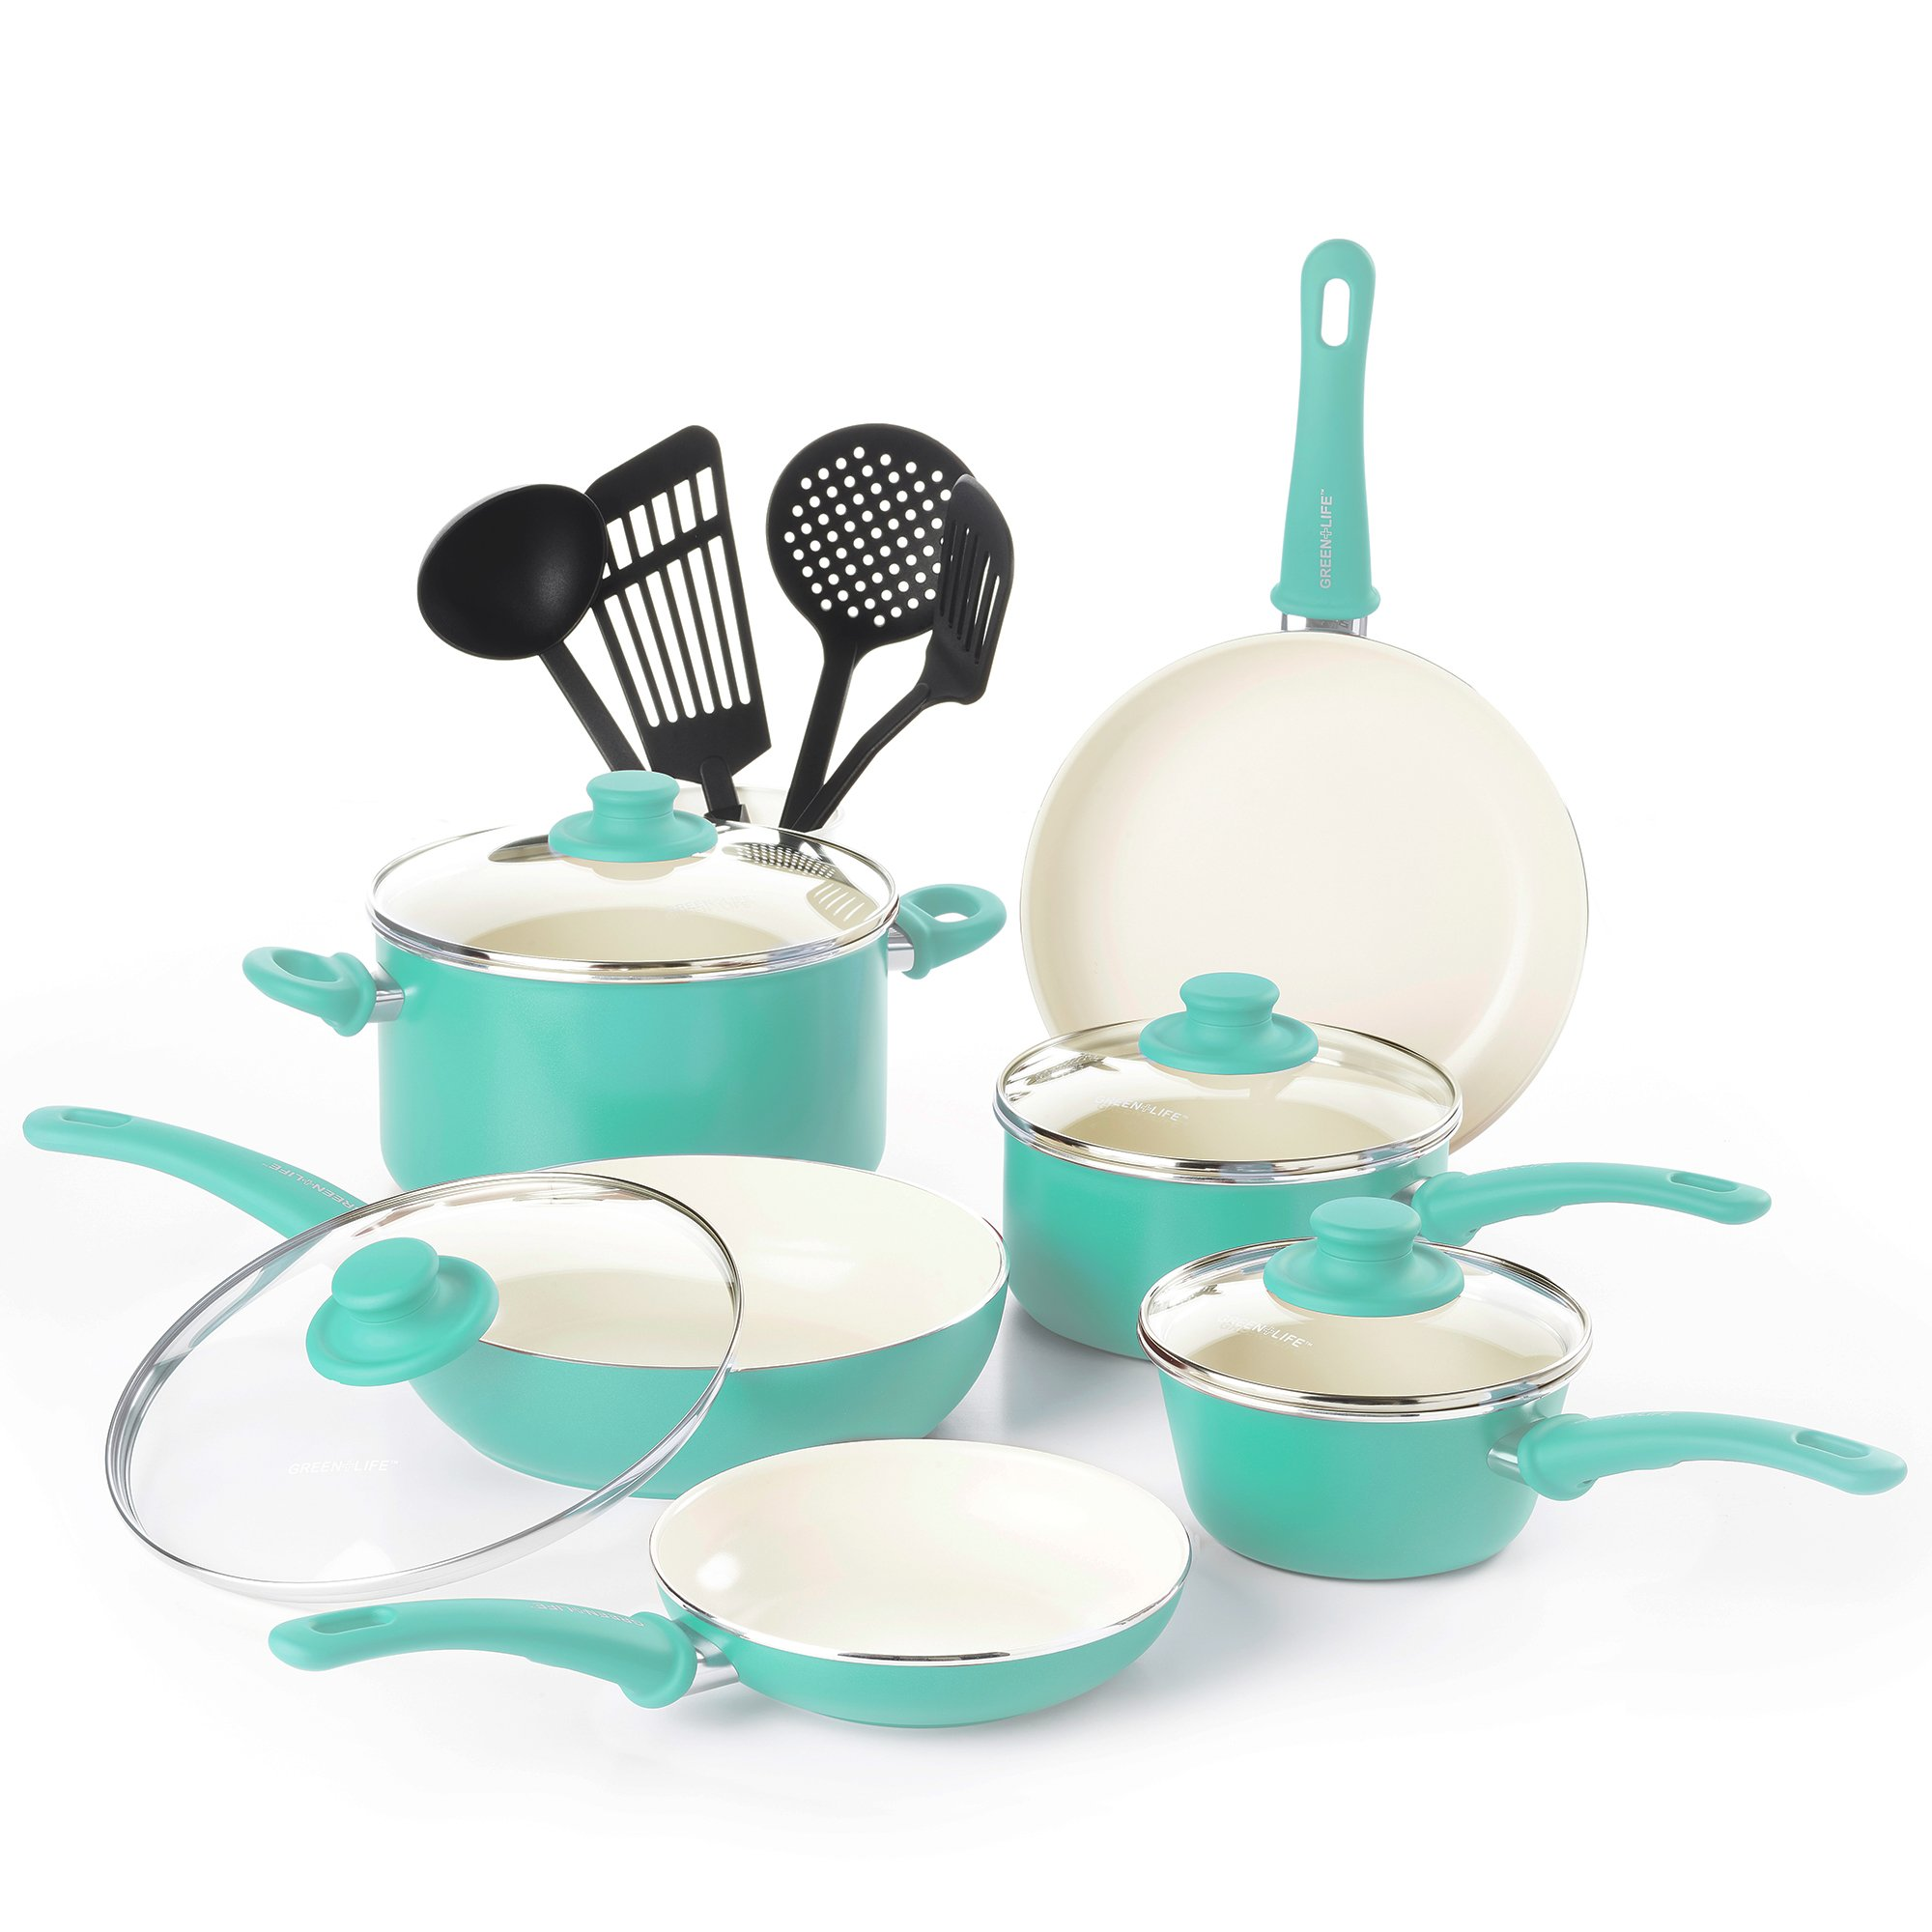 GreenLife CW000531-002 Soft Grip Absolutely Toxin-Free Healthy Ceramic Nonstick Dishwasher/Oven Safe Stay Cool Handle Cookware Set, 14-Piece, Turquoise by GreenLife (Image #1)